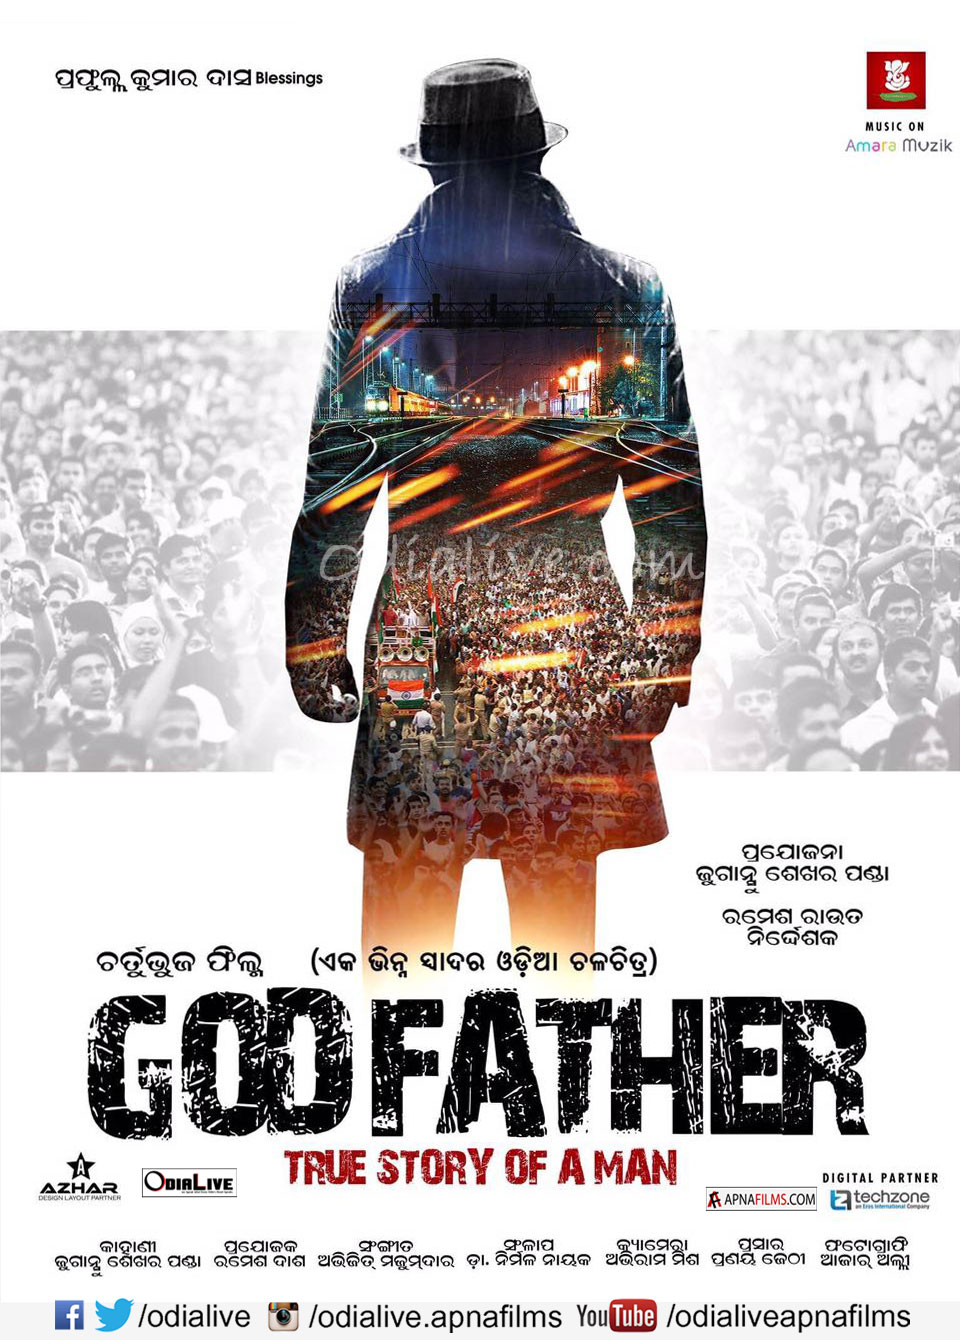 Watch God Father Odia Film trailer 1